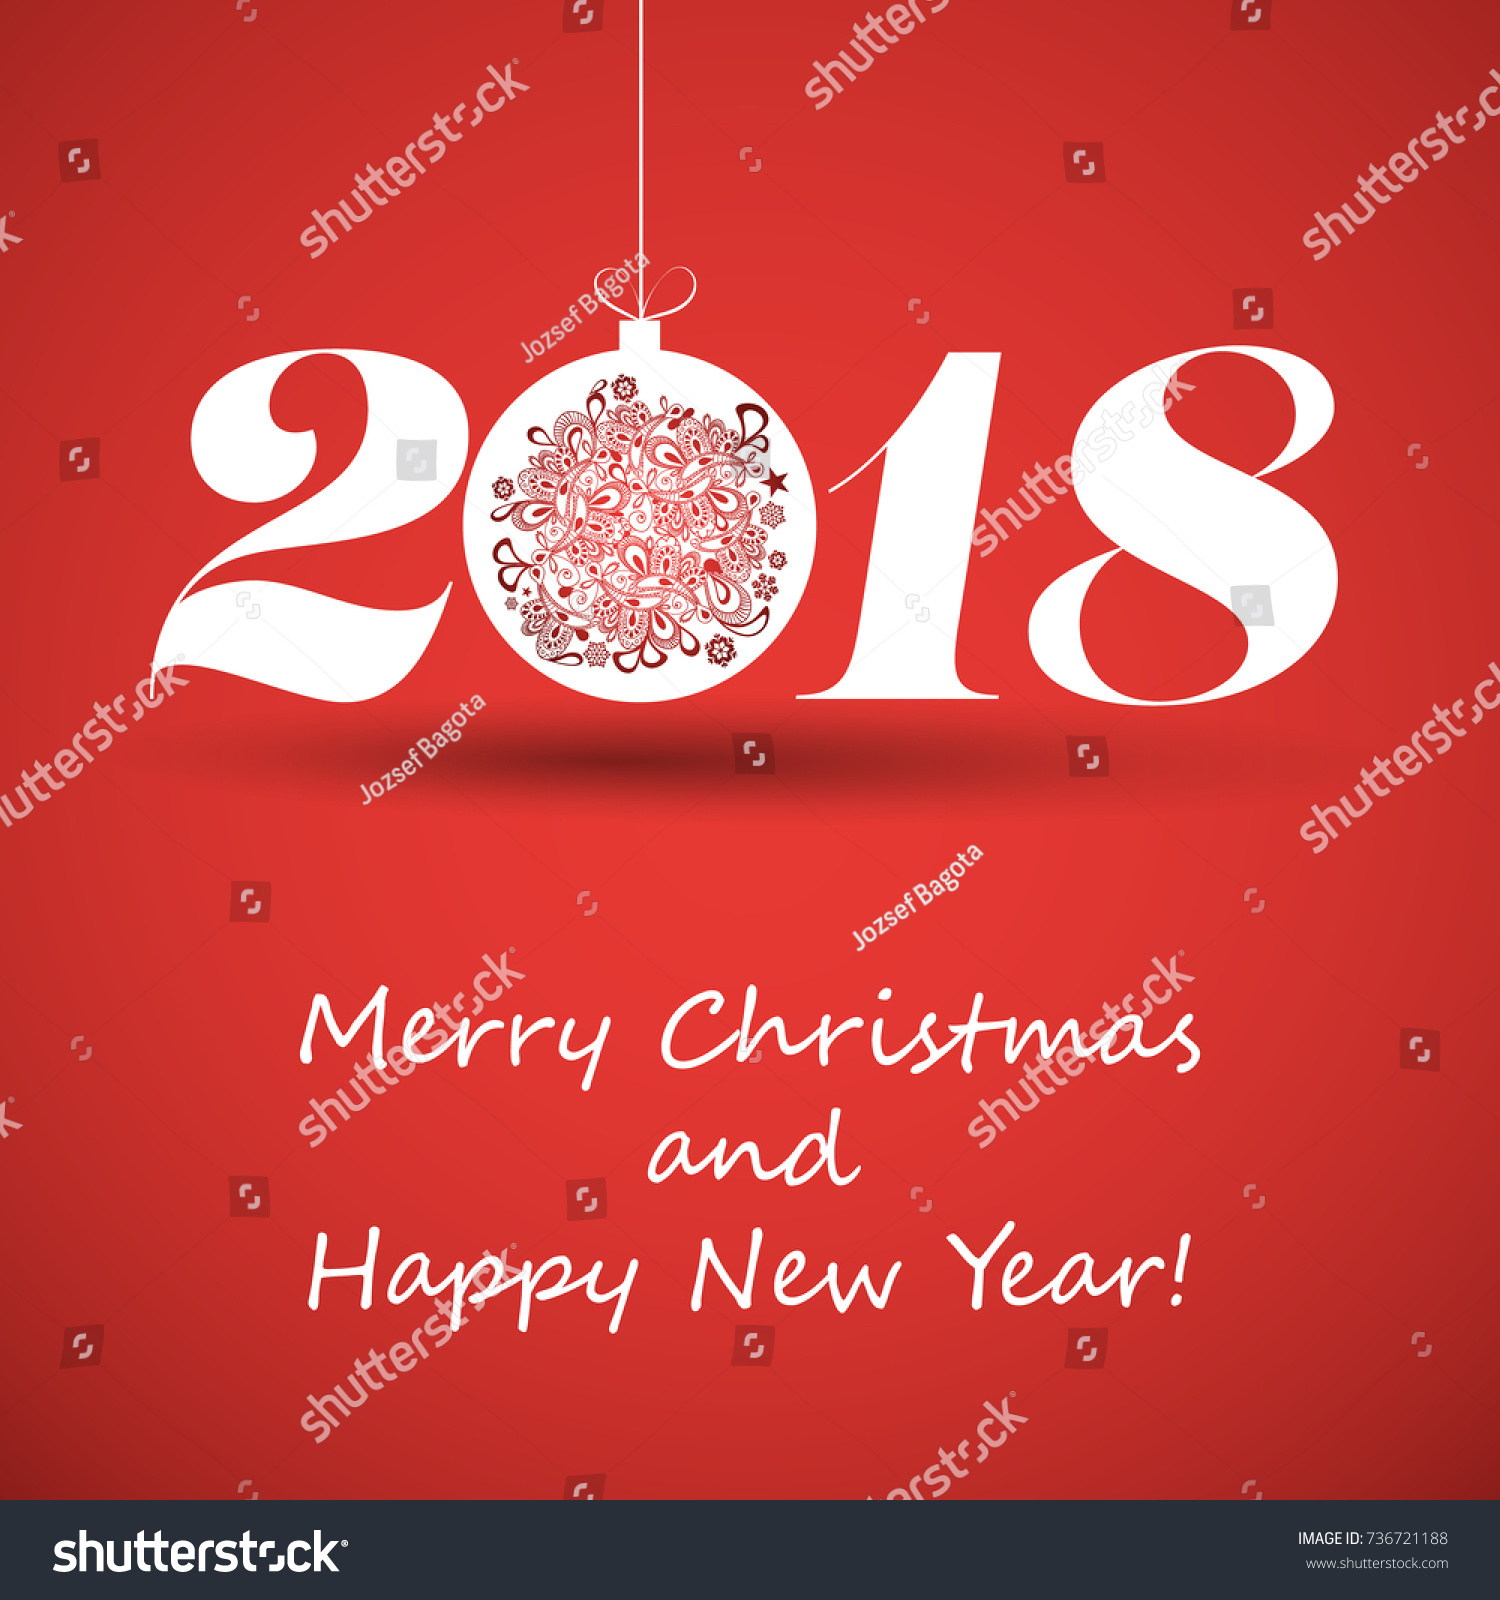 merry christmas and happy new year greeting card creative design template 2018